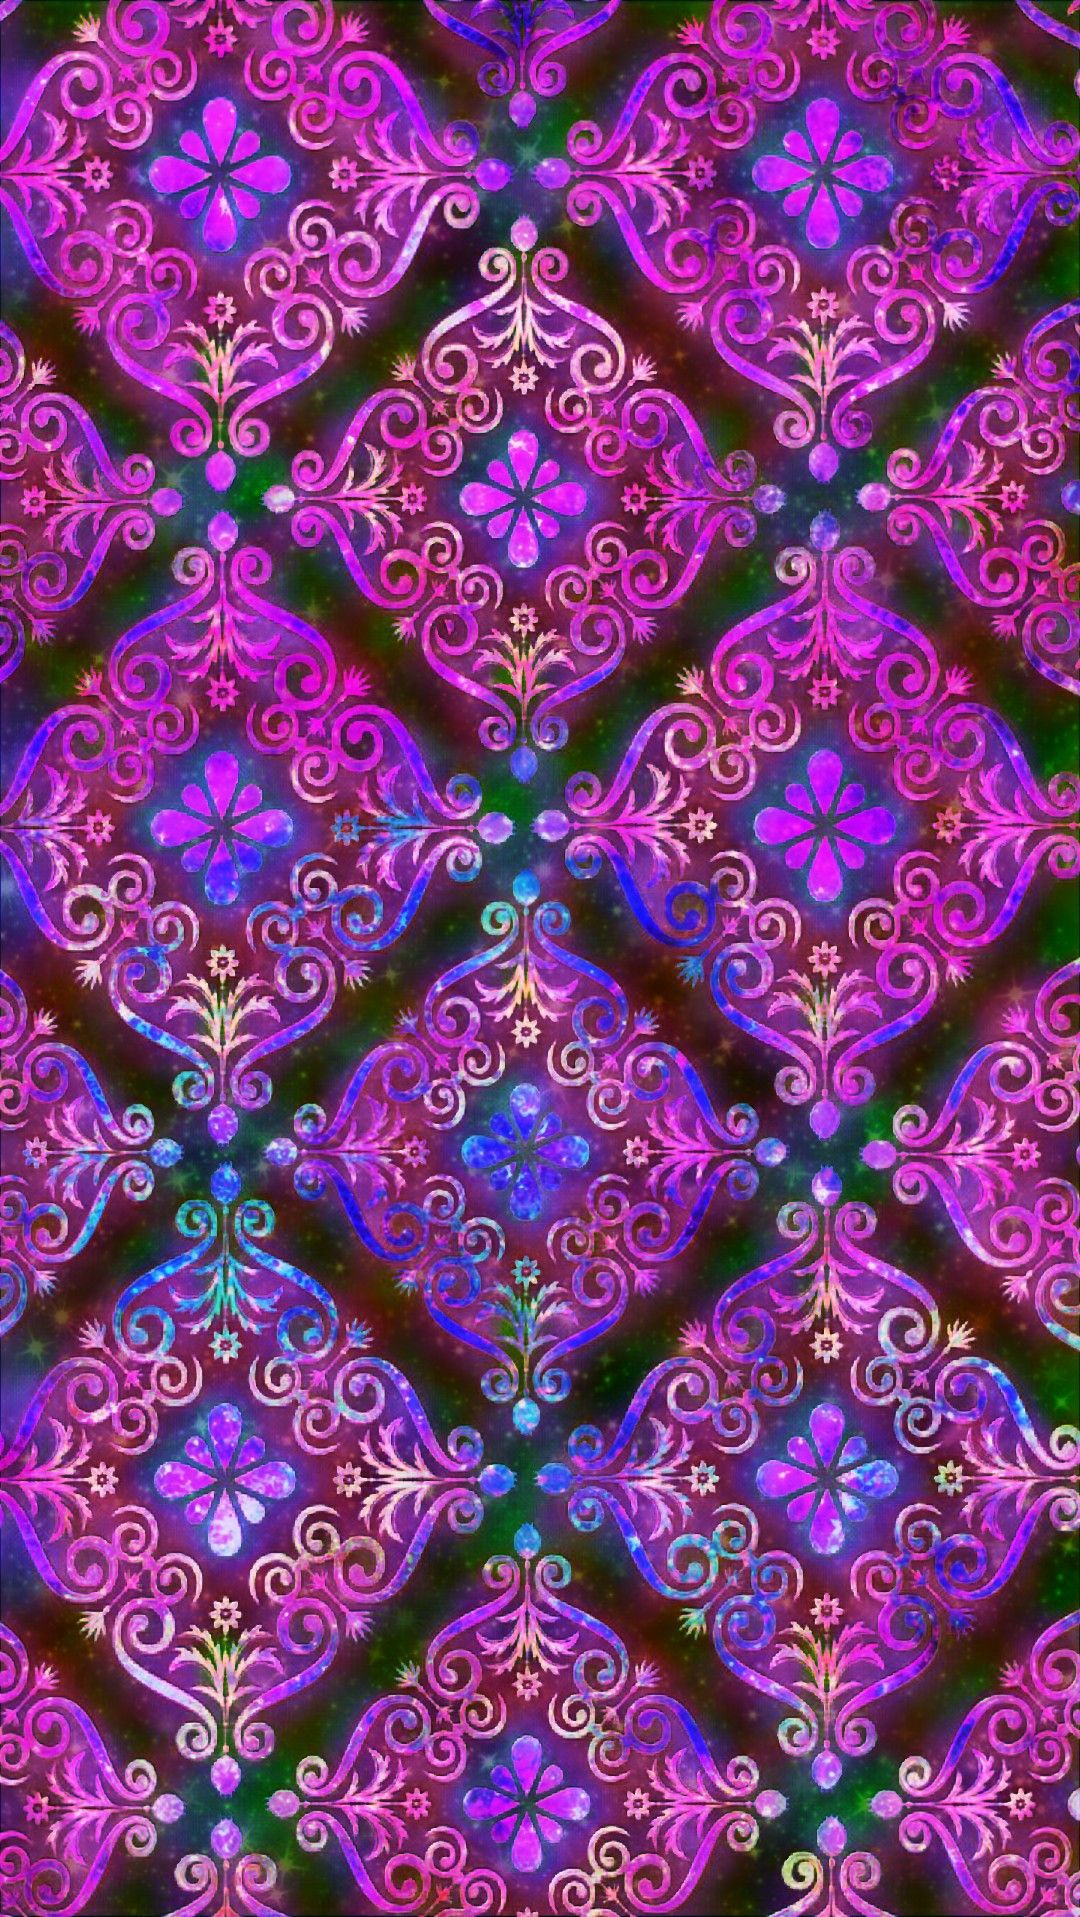 Floral Damask Galaxy, made by me patterns purple